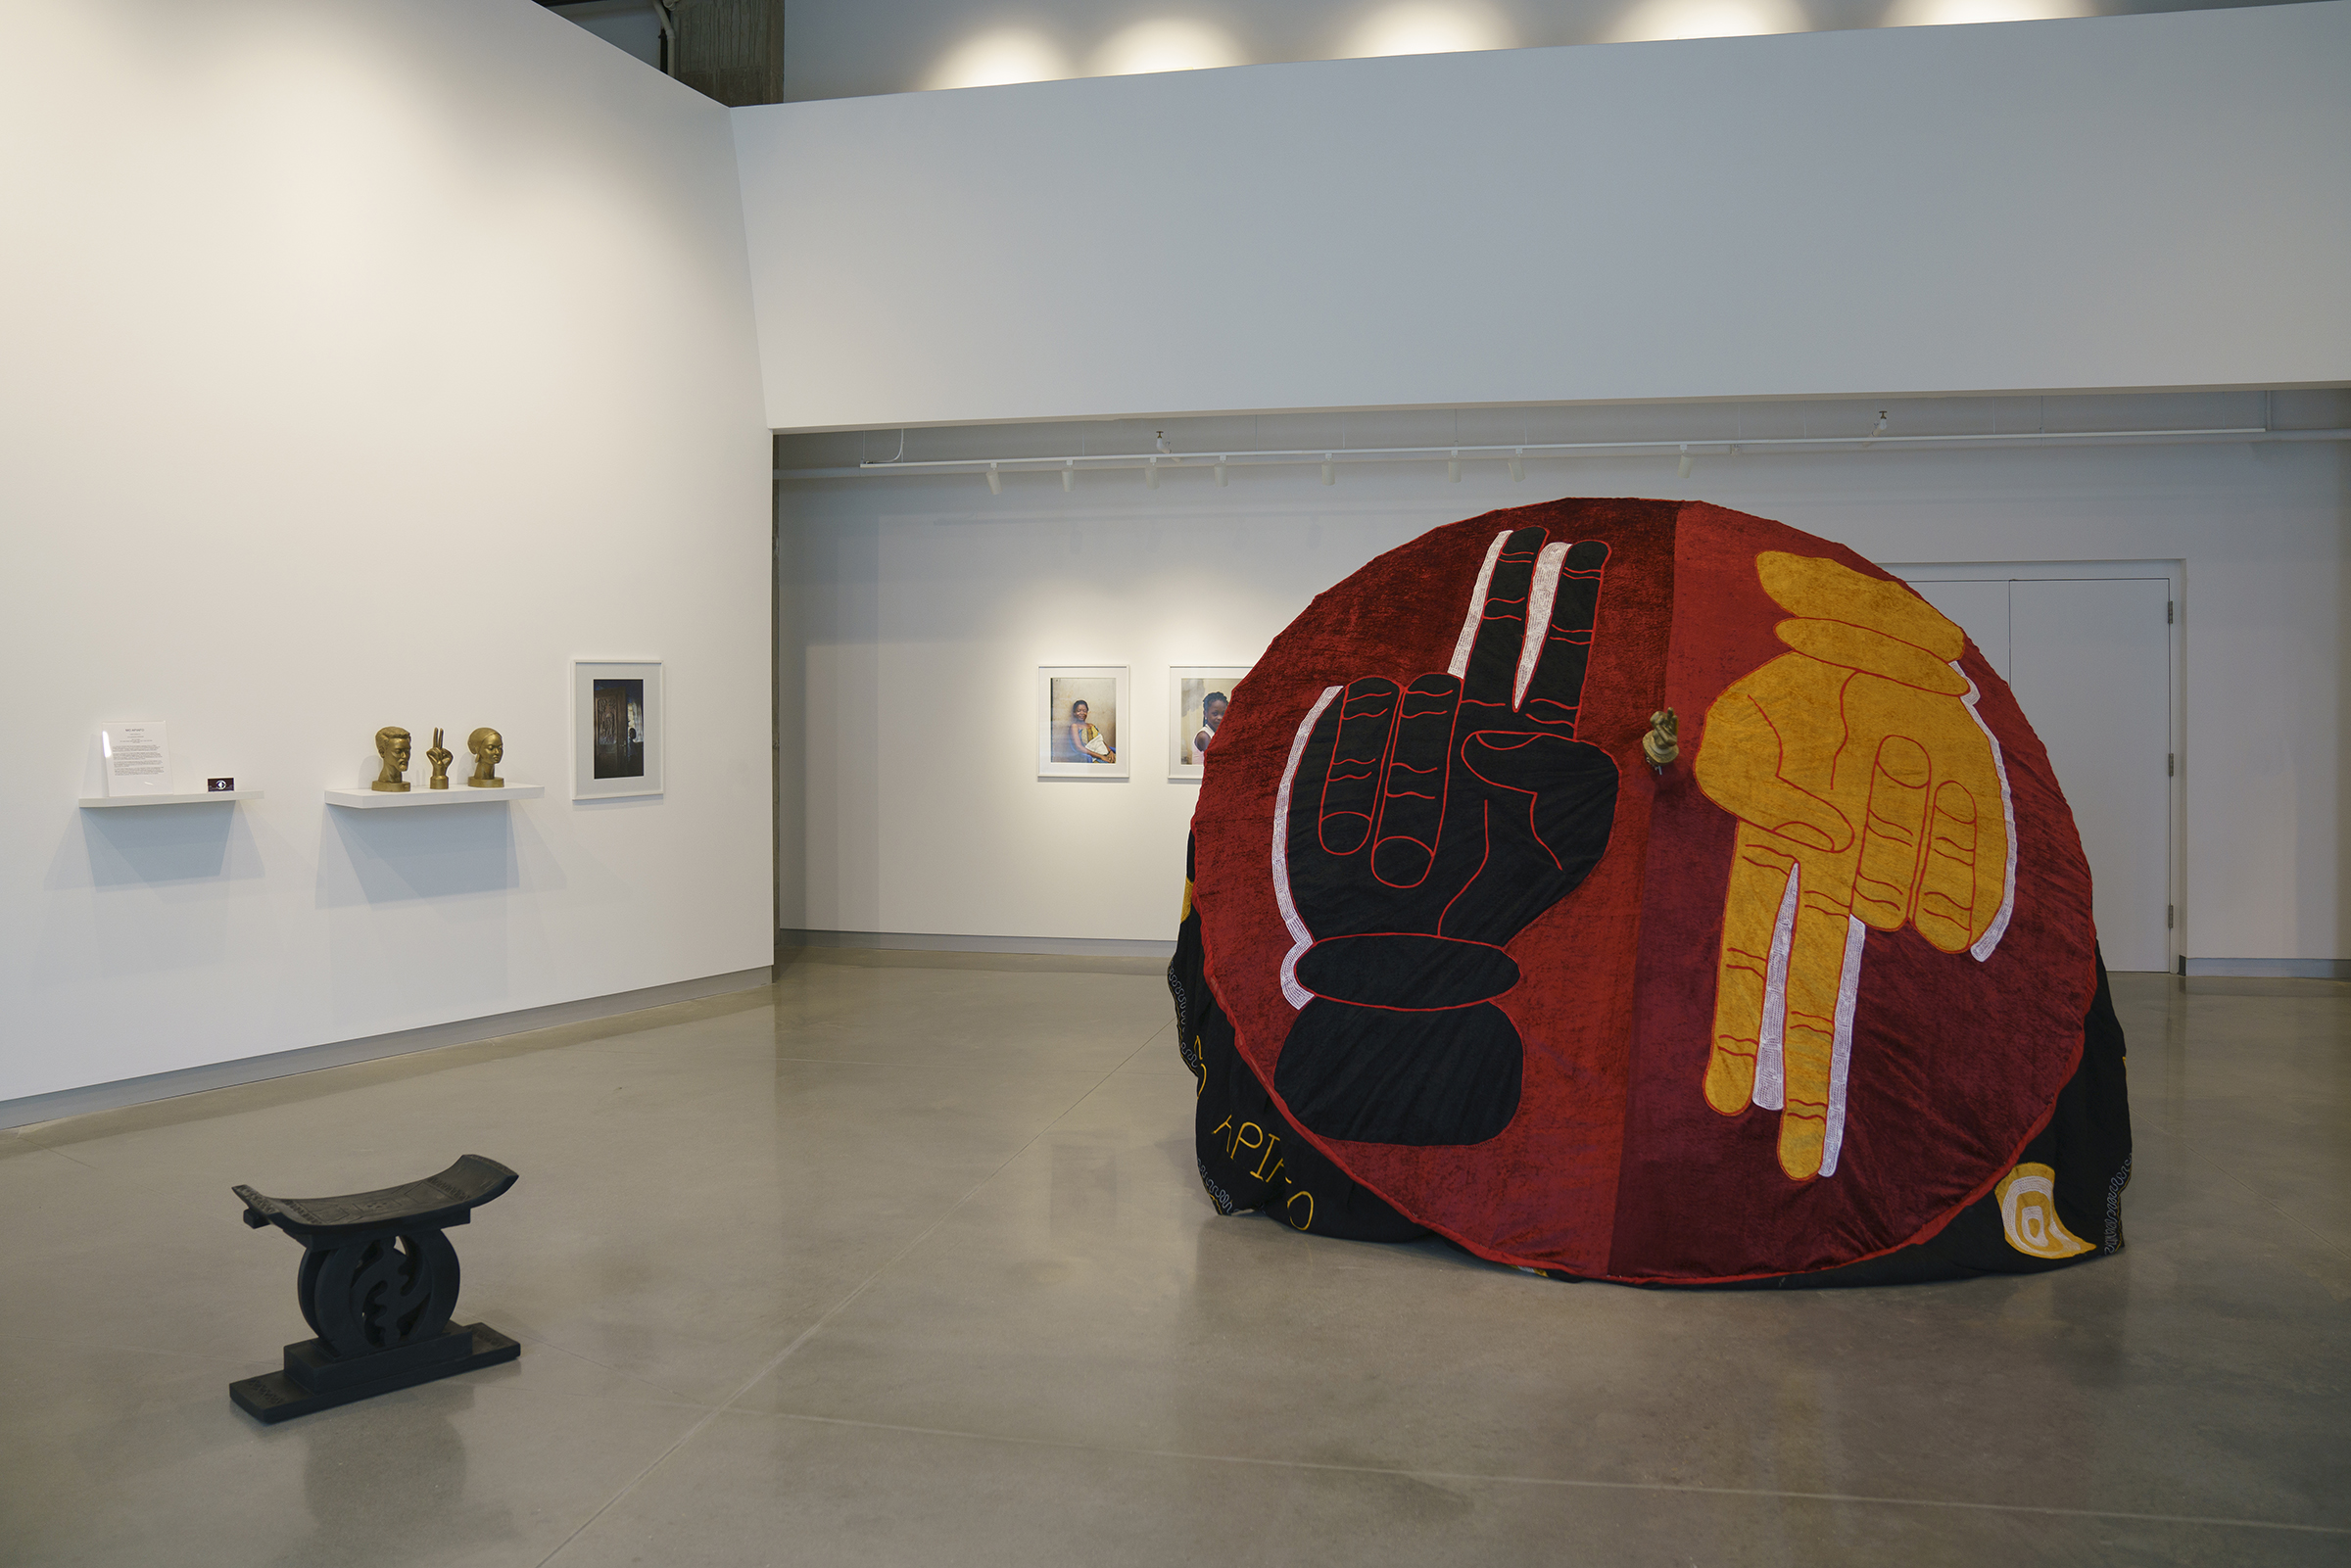 Installation view of Mo Apiafo by Rita Mawuena Benissan at the Arts + Literature Laboratory, photography by Ali Deane.